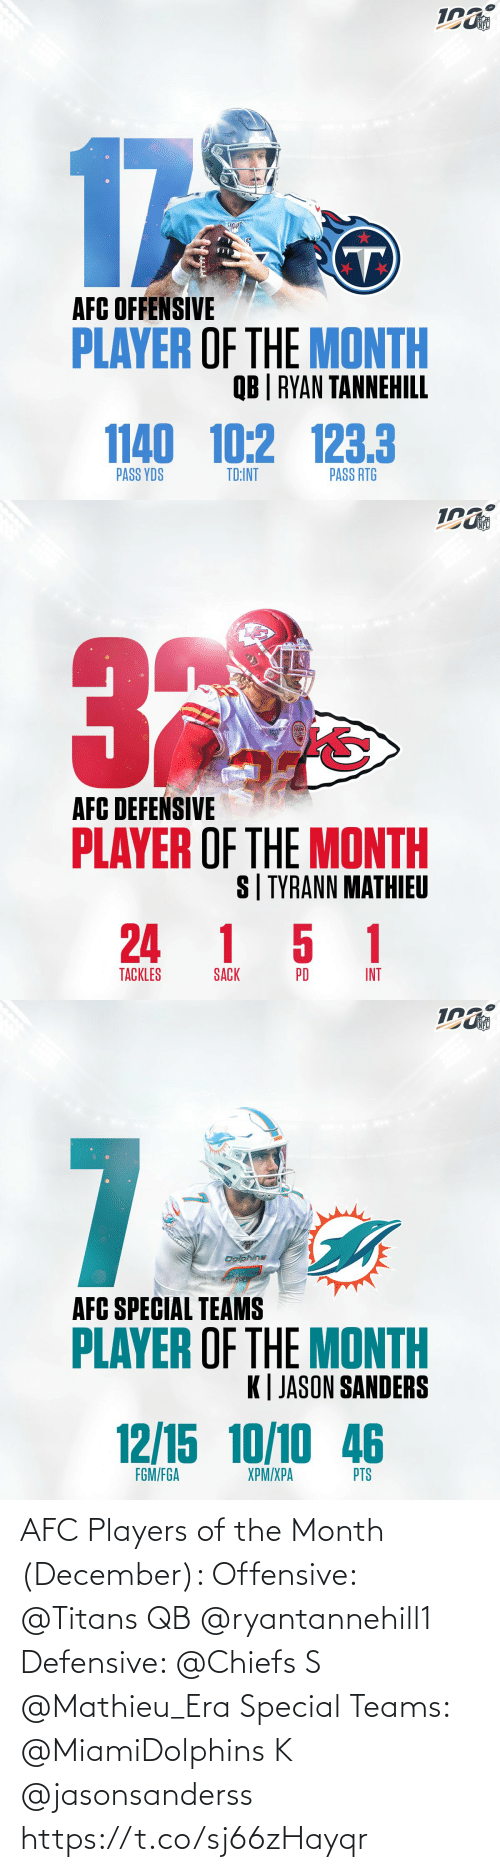 int: NFL  17  AFC OFFENSIVE  PLAYER OF THE MONTH  QB | RYAN TANNEHILL  1140 10:2 123.3  PASS RTG  PASS YDS  TD:INT   NFL  AFC DEFEŃSIVE  PLAYER OF THE MONTH  S| TYRANN MATHIEU  24 1 5 1  TACKLES  INT  PD  SACK   NFL  7  Dolphins  AFC SPECIAL TEAMS  PLAYER OF THE MONTH  K| JASON SANDERS  12/15 10/10 46  FGM/FGA  XPM/XPA  PTS AFC Players of the Month (December):   Offensive: @Titans QB @ryantannehill1    Defensive: @Chiefs S @Mathieu_Era   Special Teams: @MiamiDolphins K @jasonsanderss https://t.co/sj66zHayqr